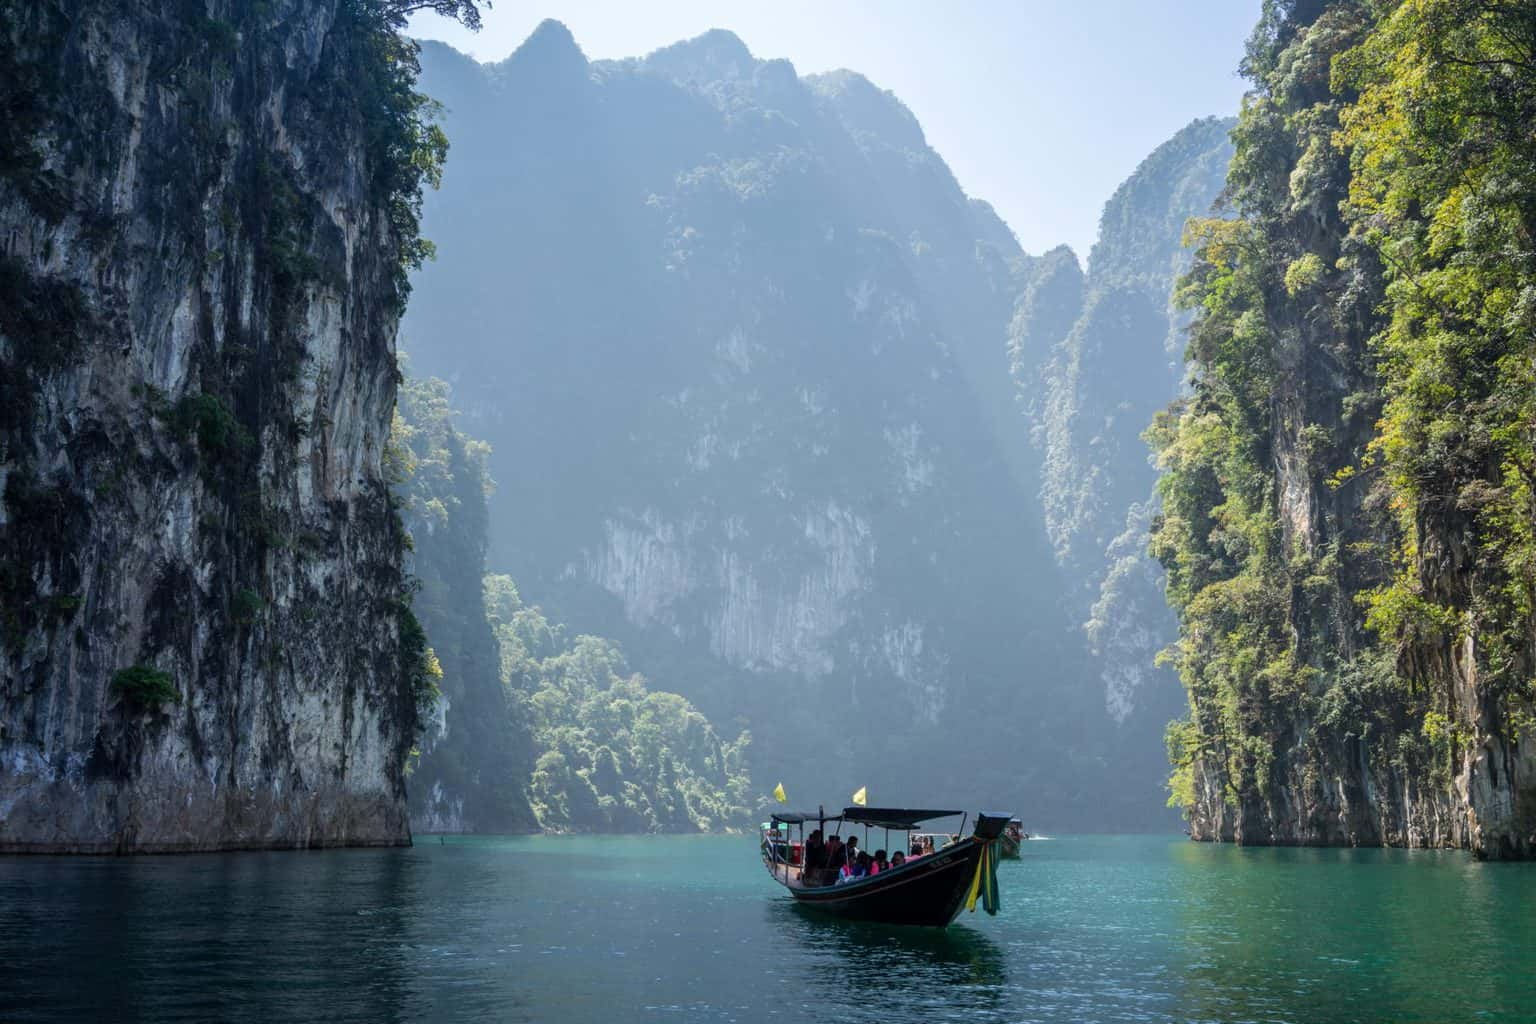 Guide to Thailand for Digital Nomads